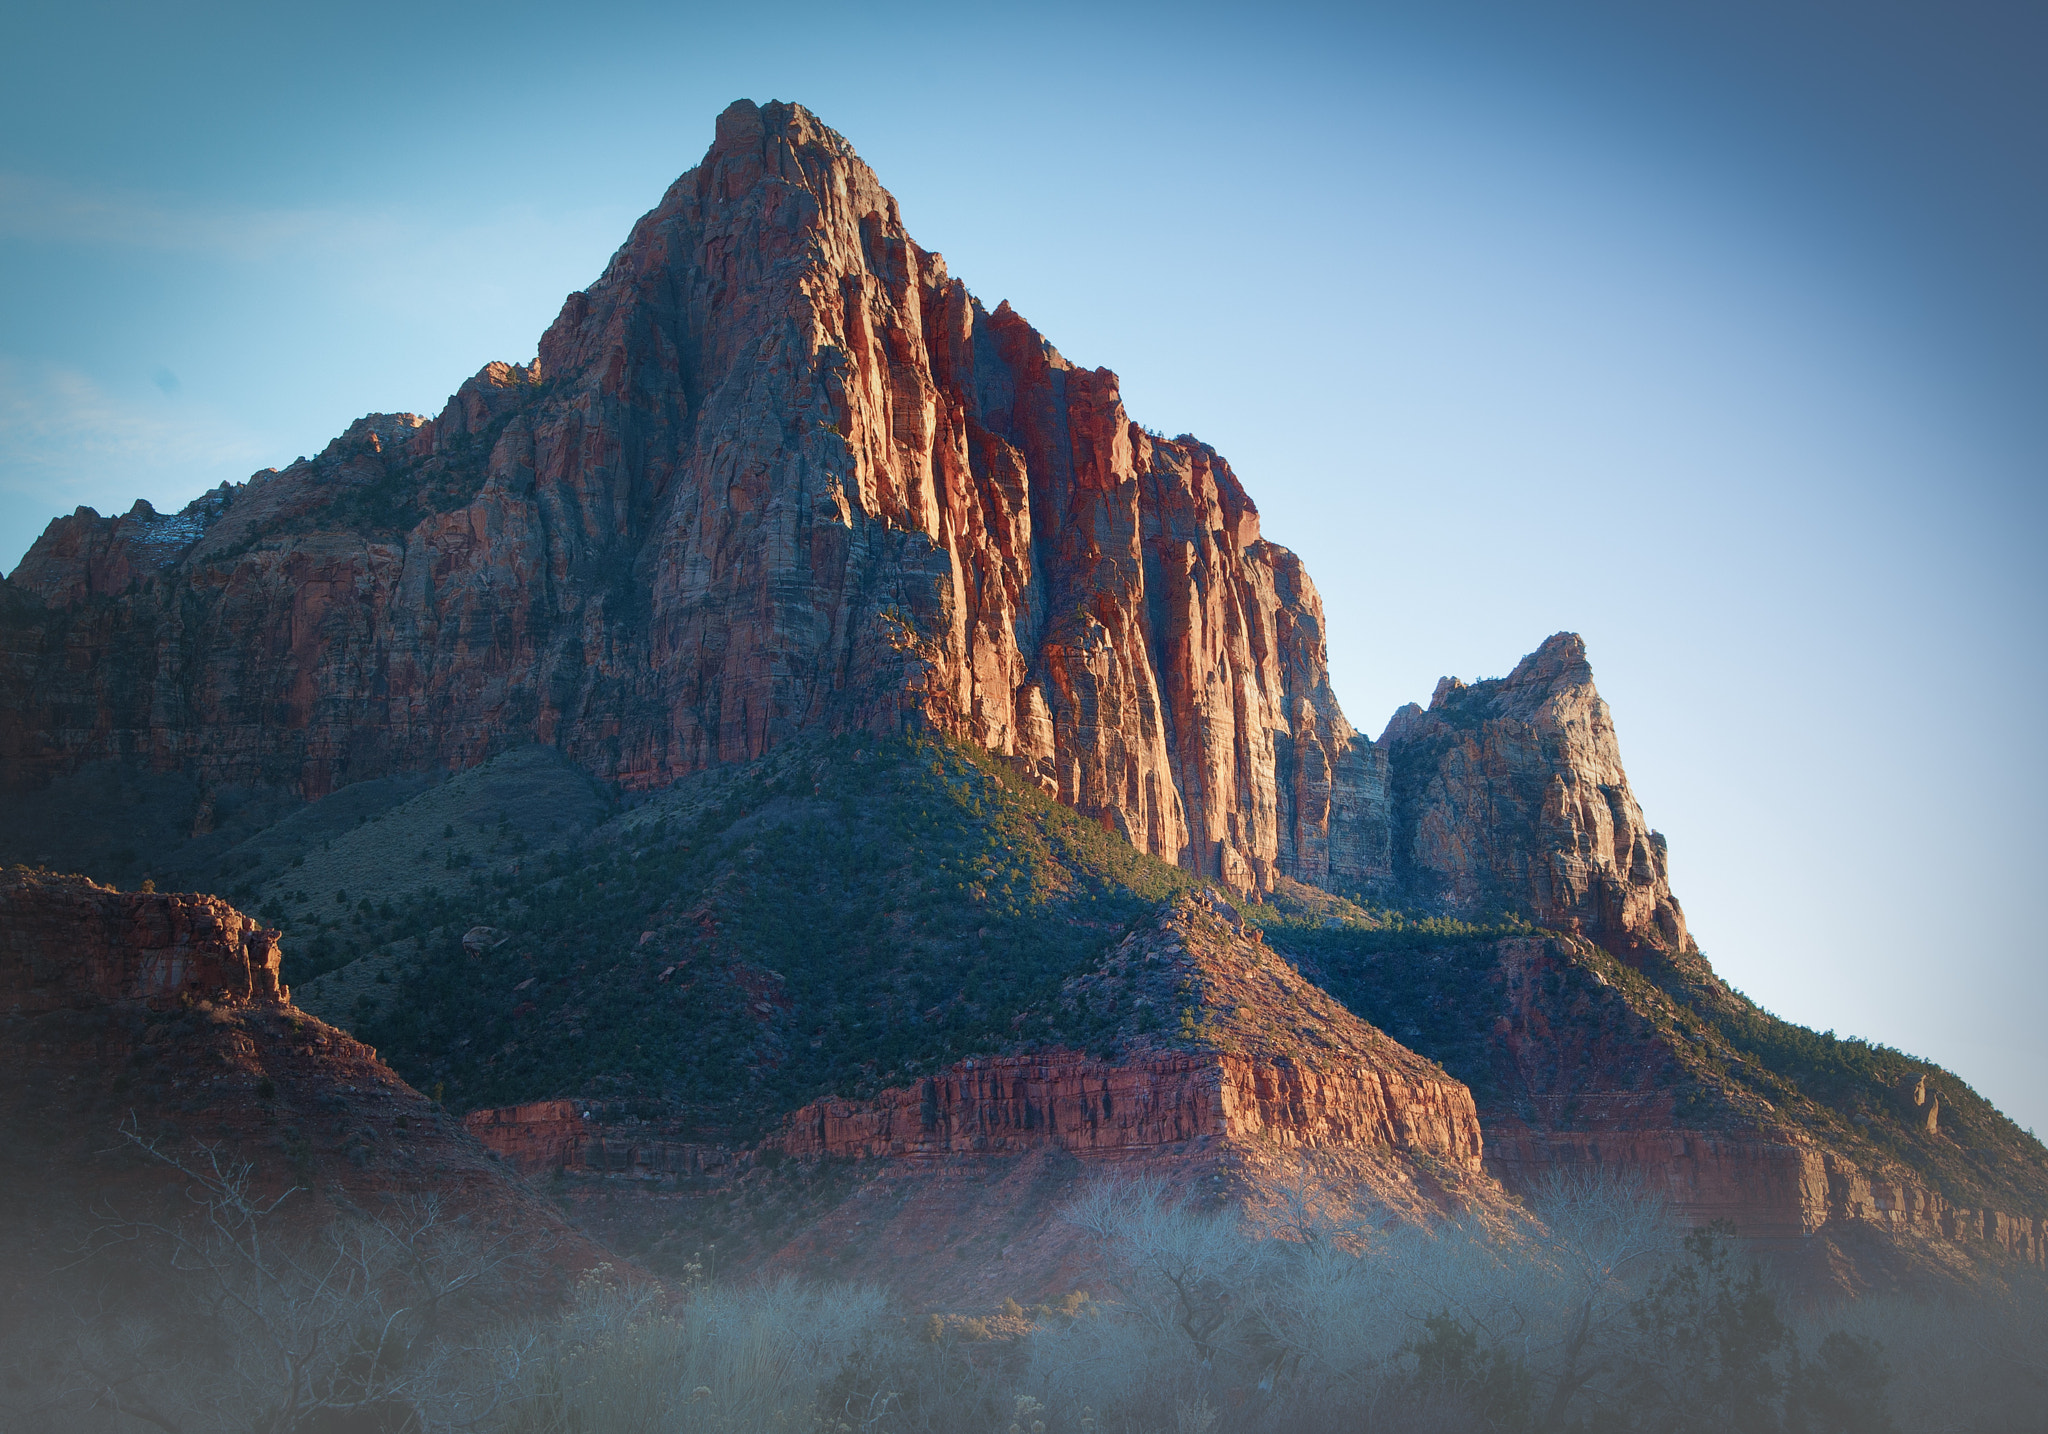 Photograph The Zion Chronicles: Morning Glory by Phil  Pippo on 500px